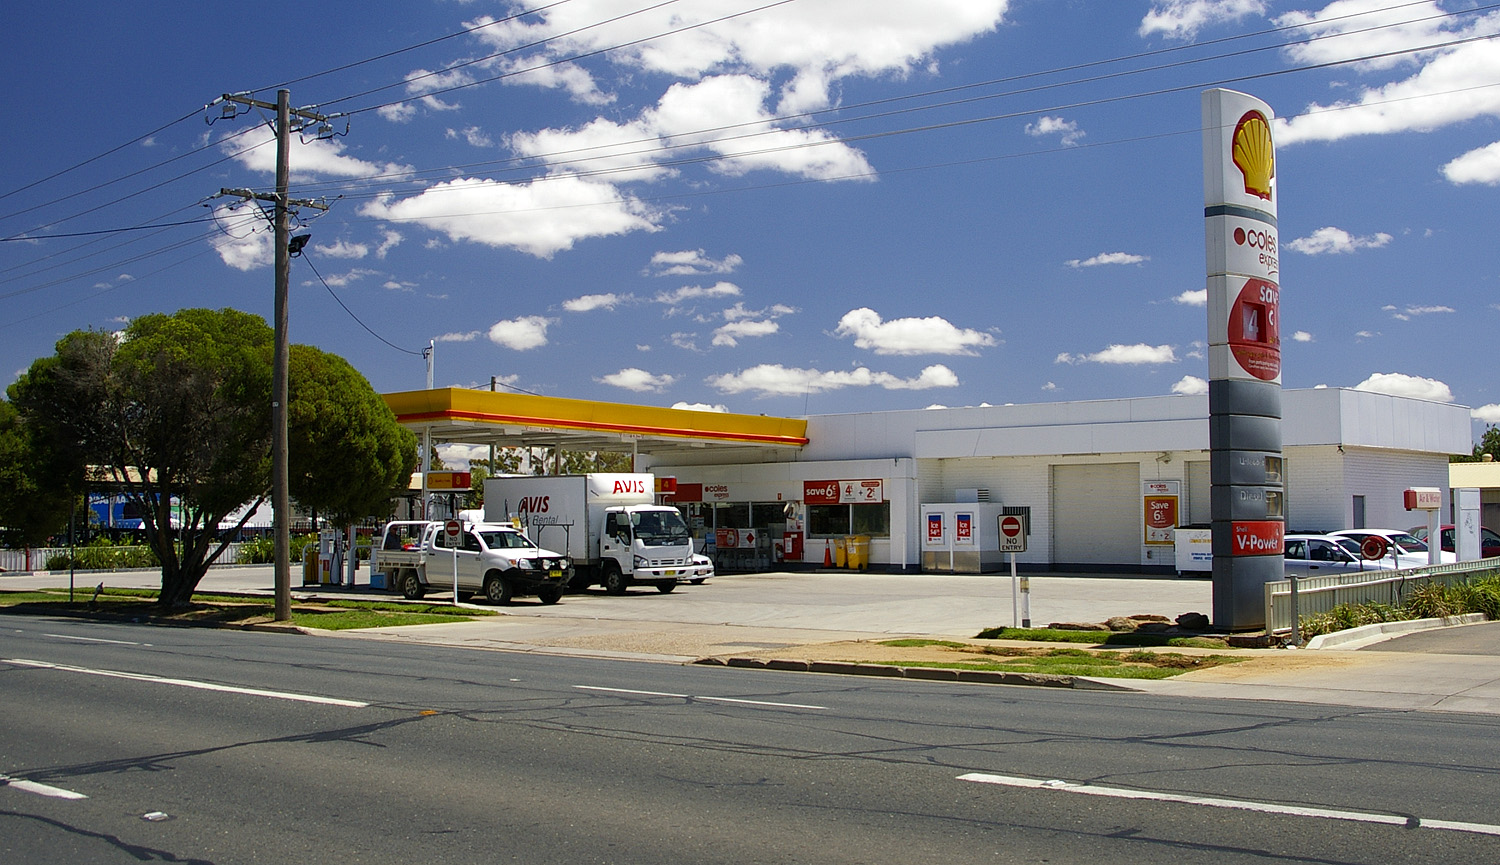 how to get 4c discount in shell petrol stations